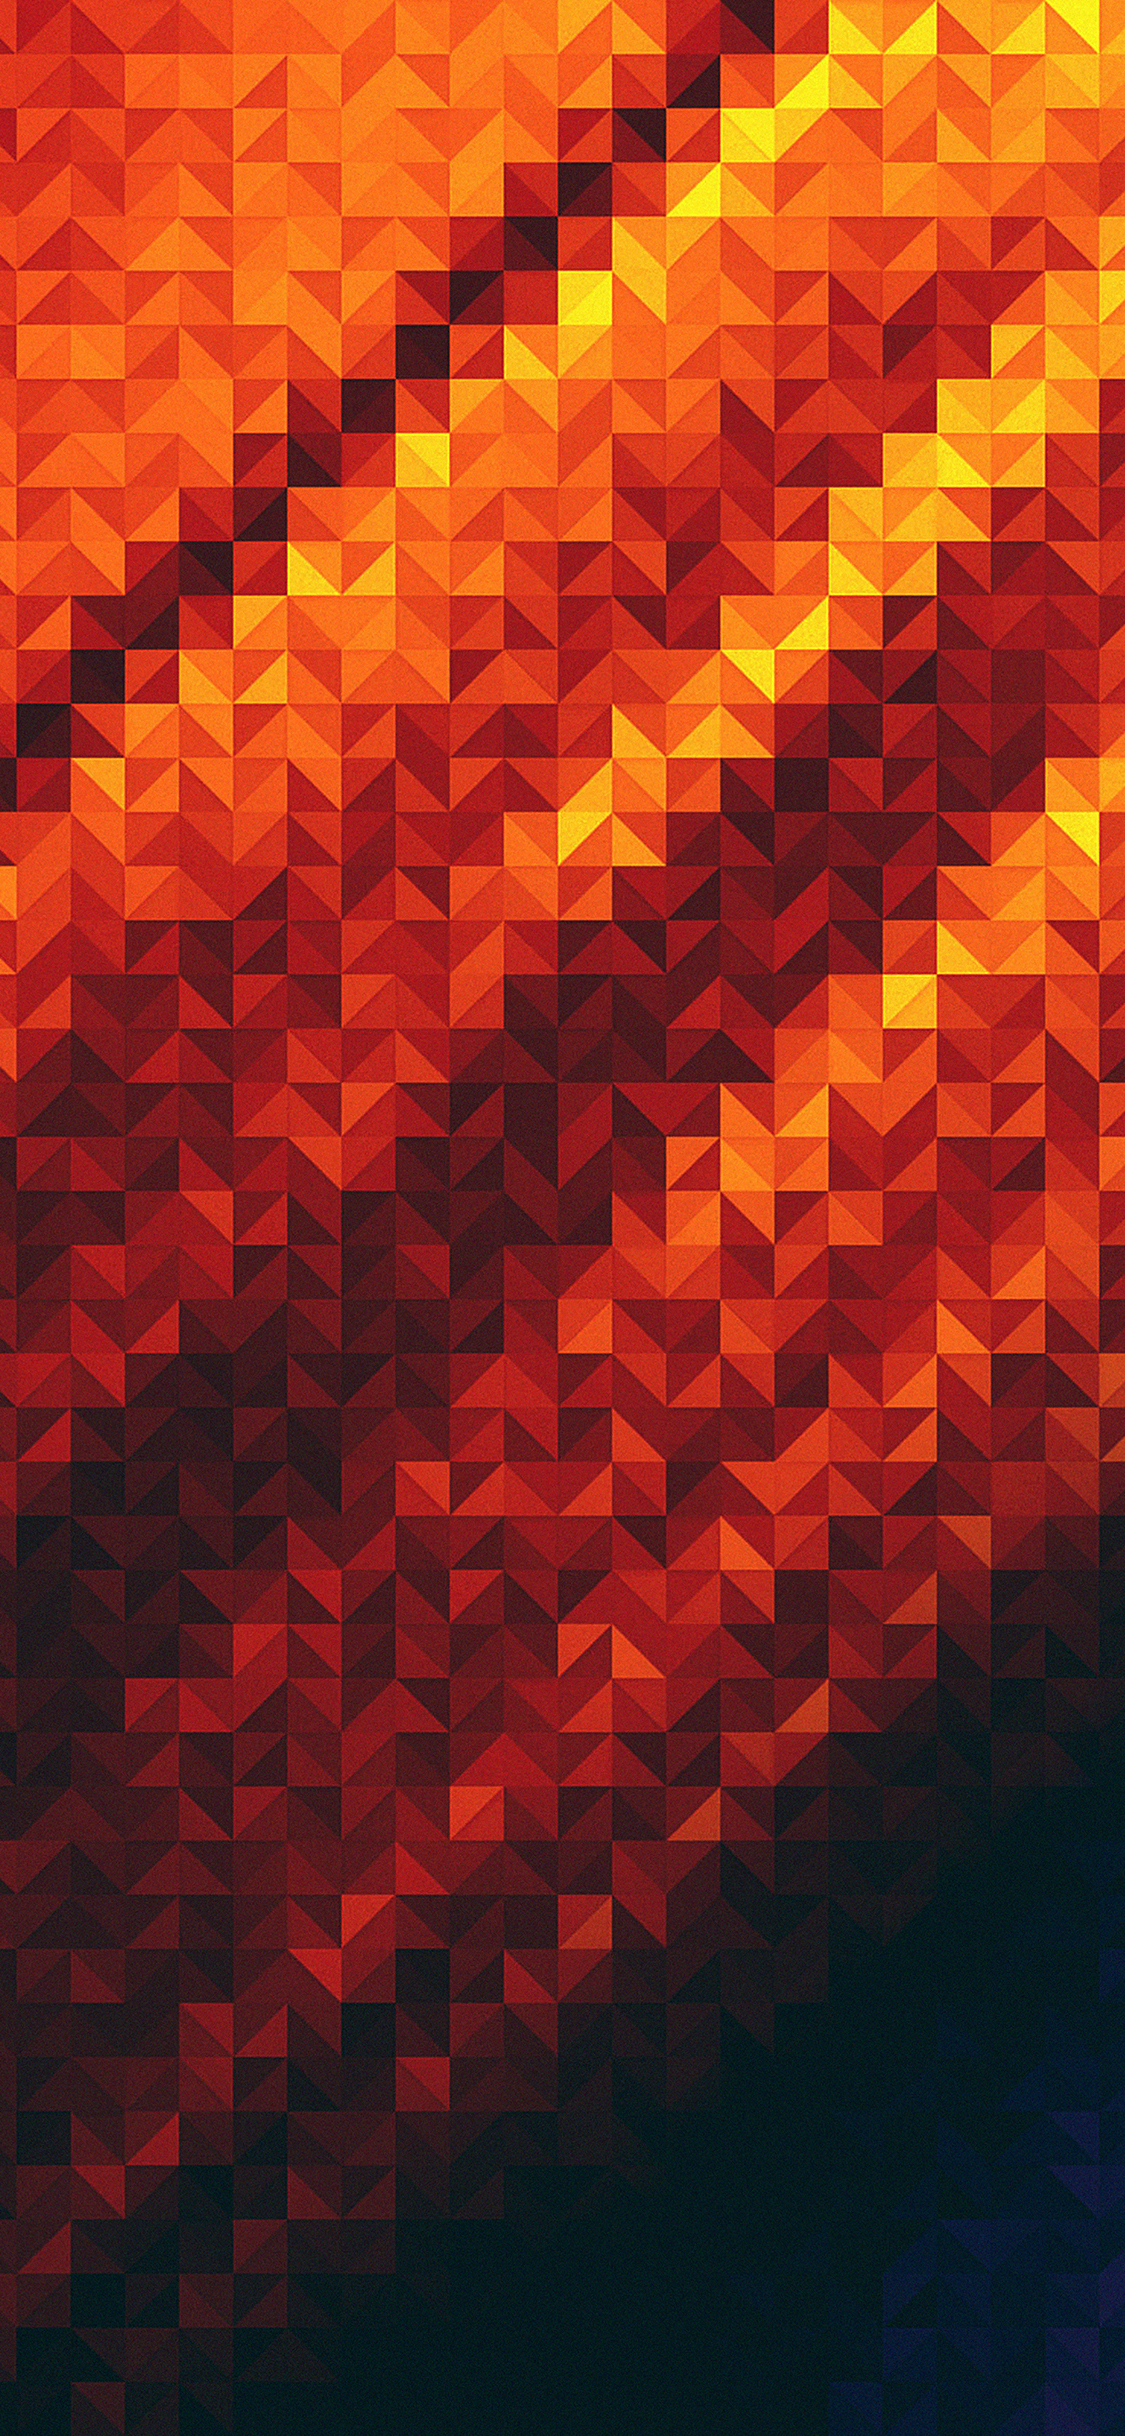 iPhoneXpapers.com-Apple-iPhone-wallpaper-vb57-wallpaper-bjango1-2-pattern